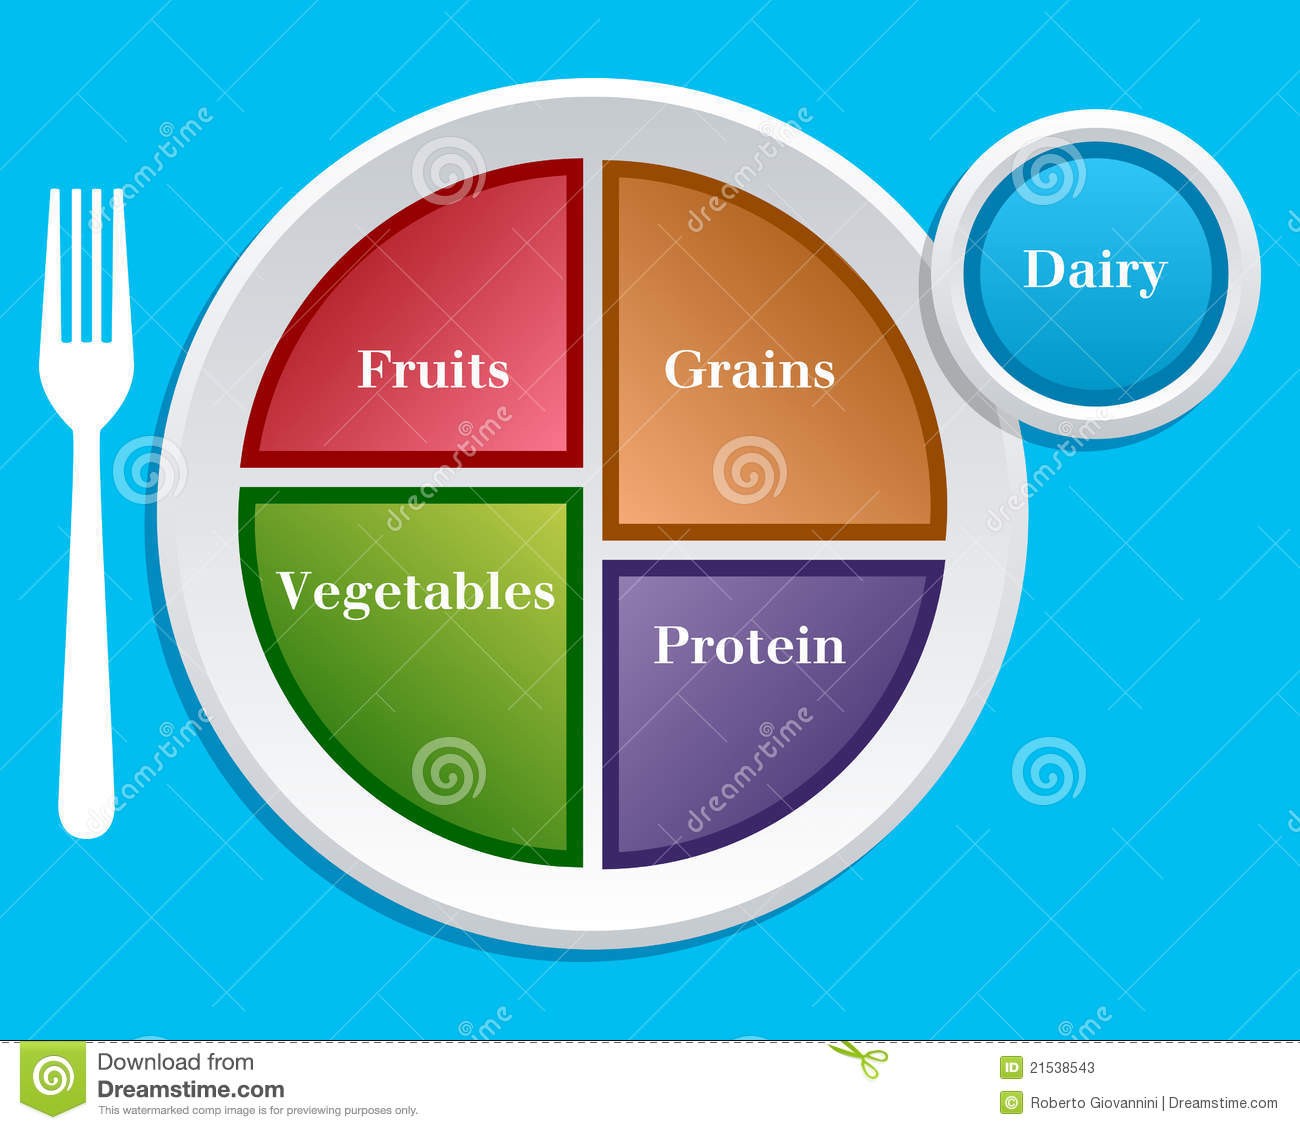 My Plate Diet Nutrition Guide Stock Photos.